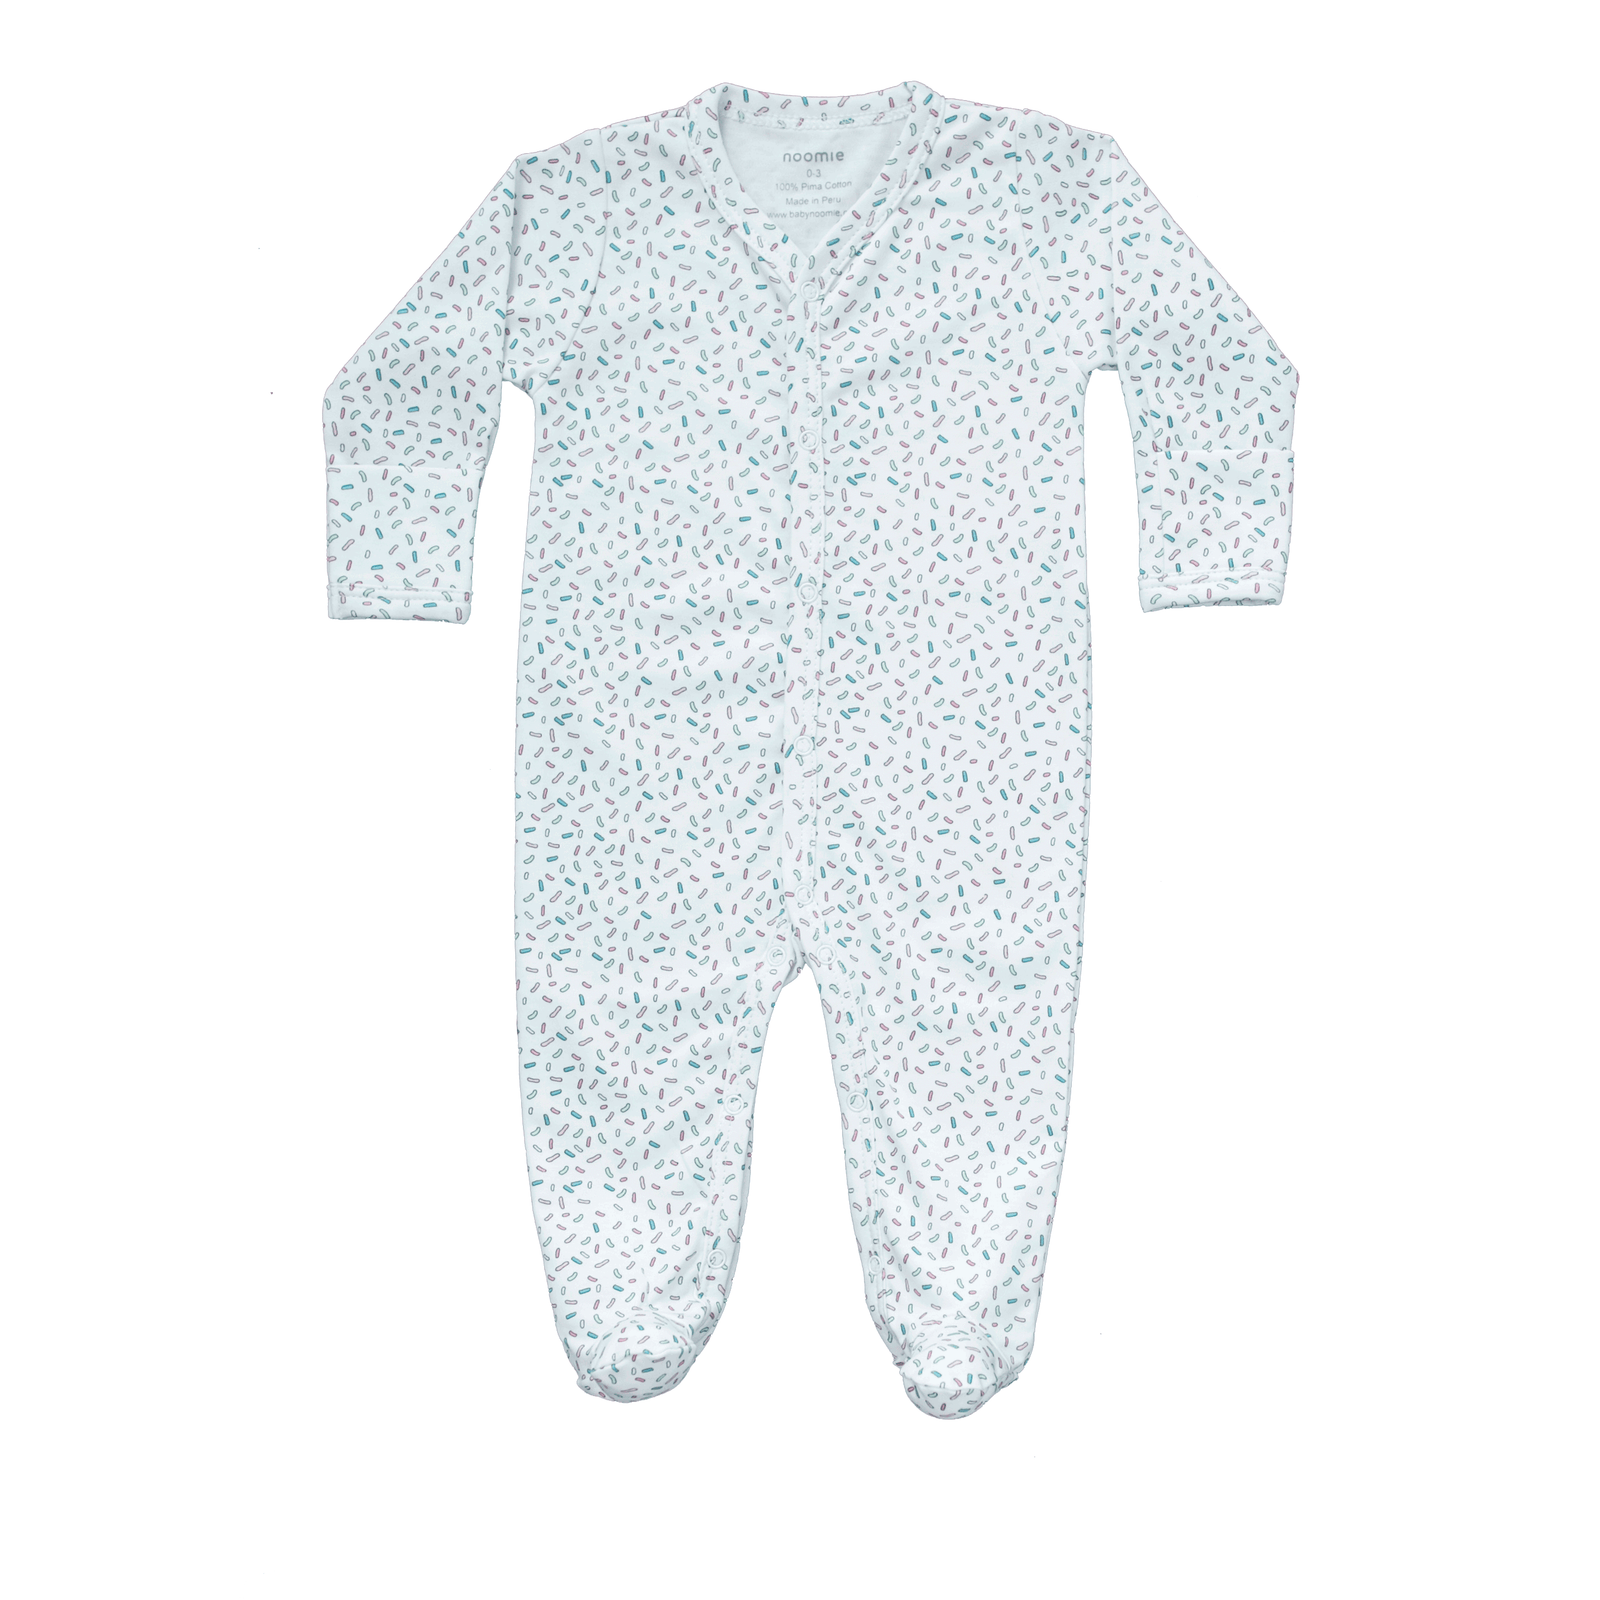 Pima Cotton Snap Footie - Sprinkle